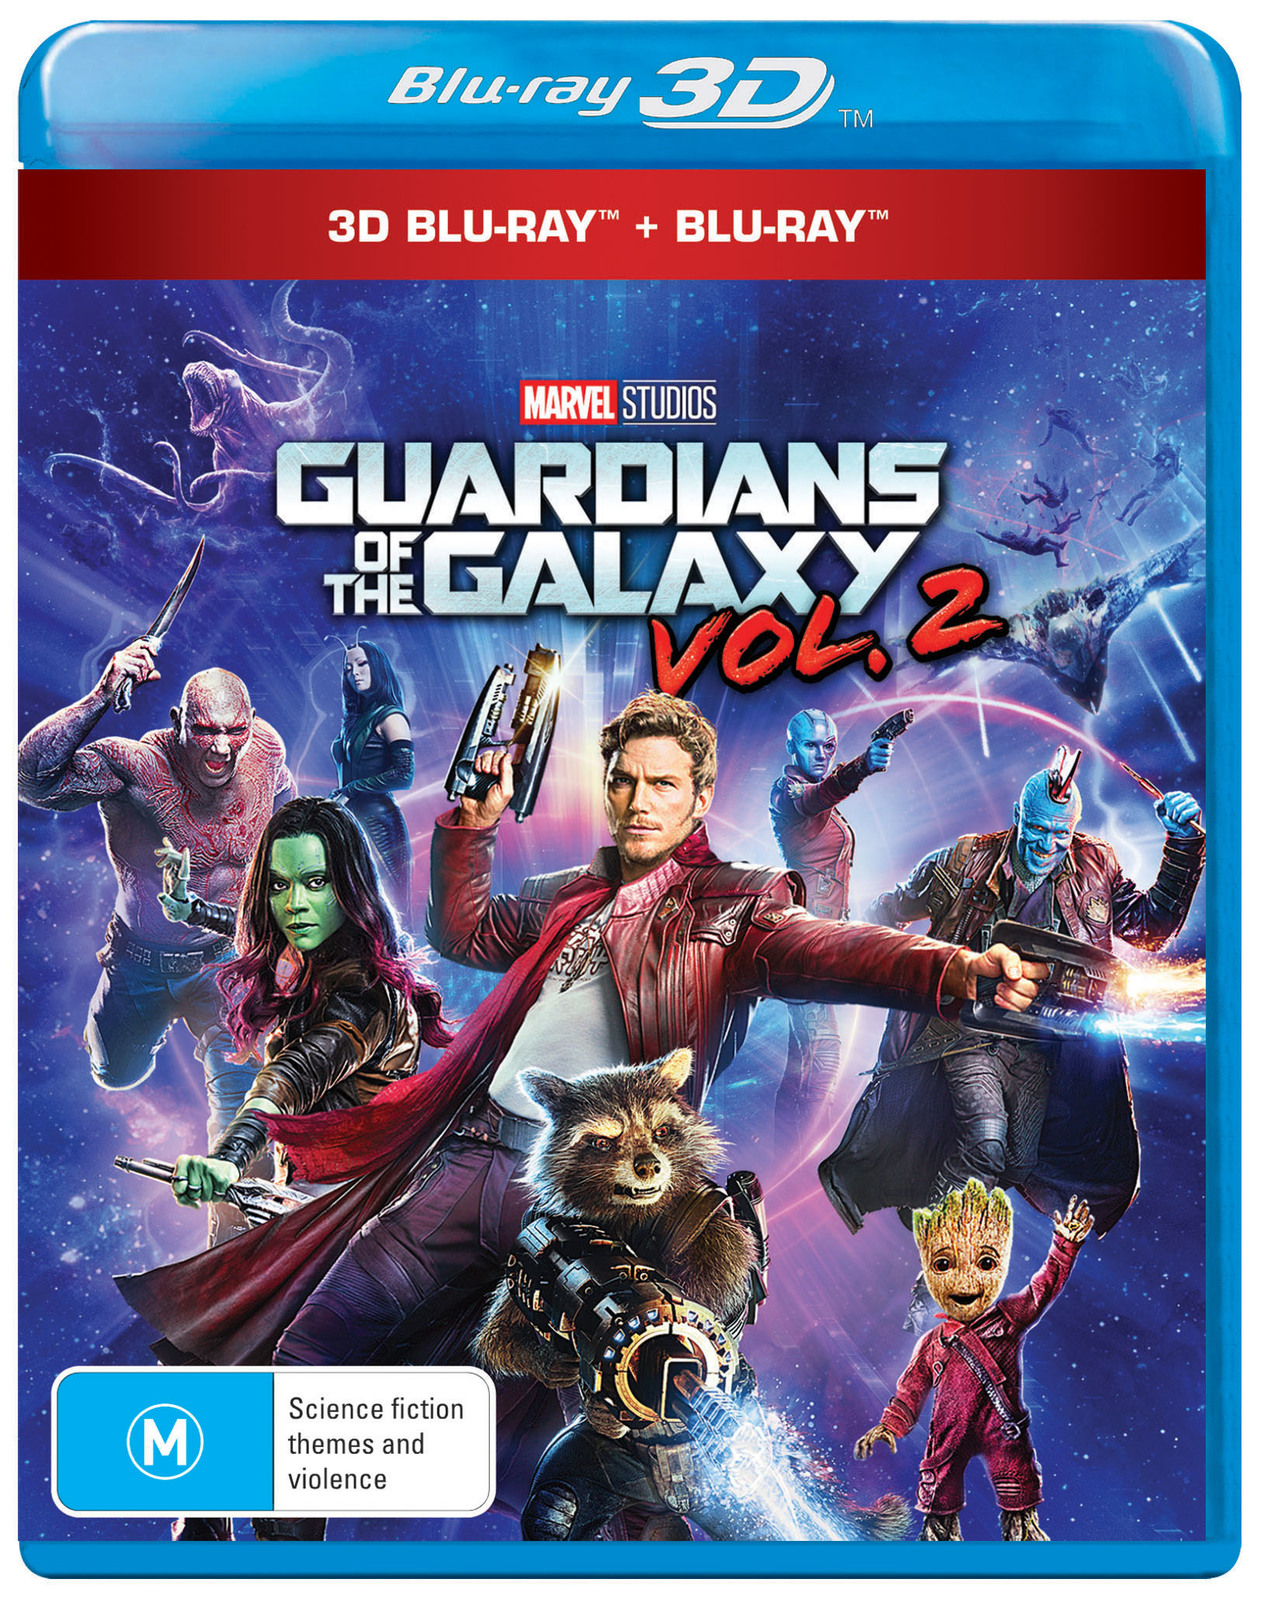 Guardians of the Galaxy Vol. 2 on Blu-ray, 3D Blu-ray image